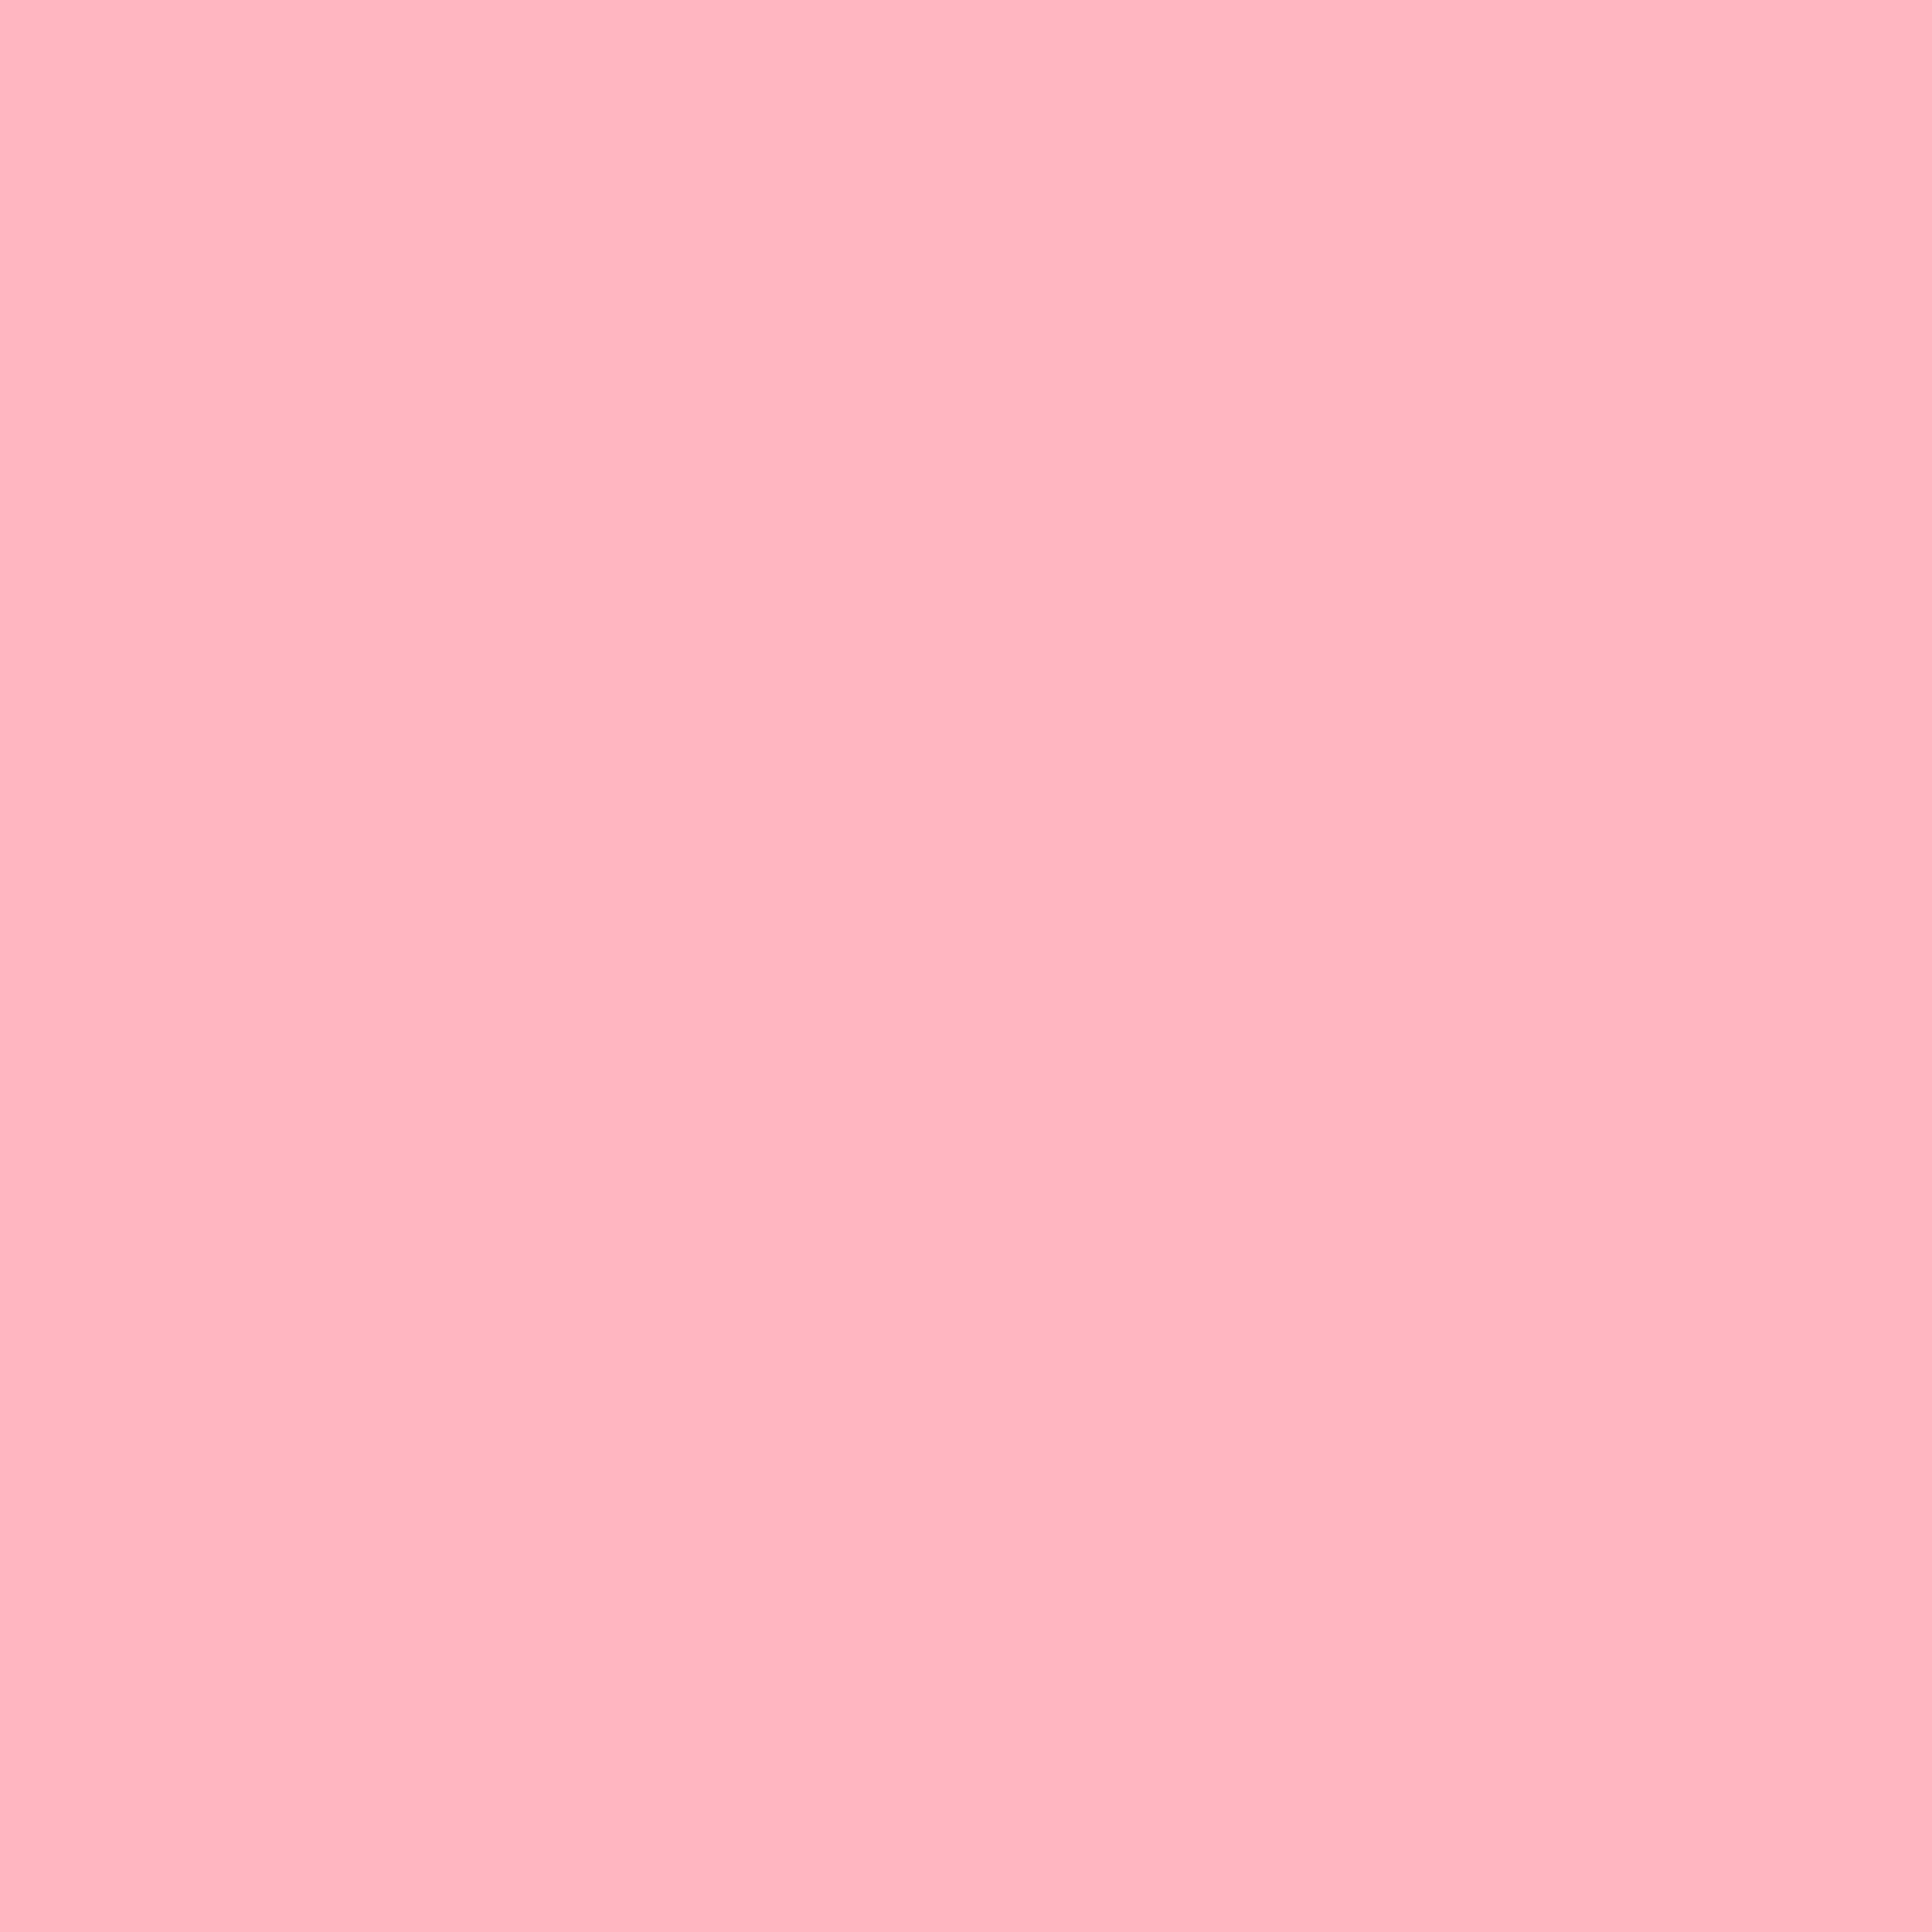 pale pink color background - photo #45